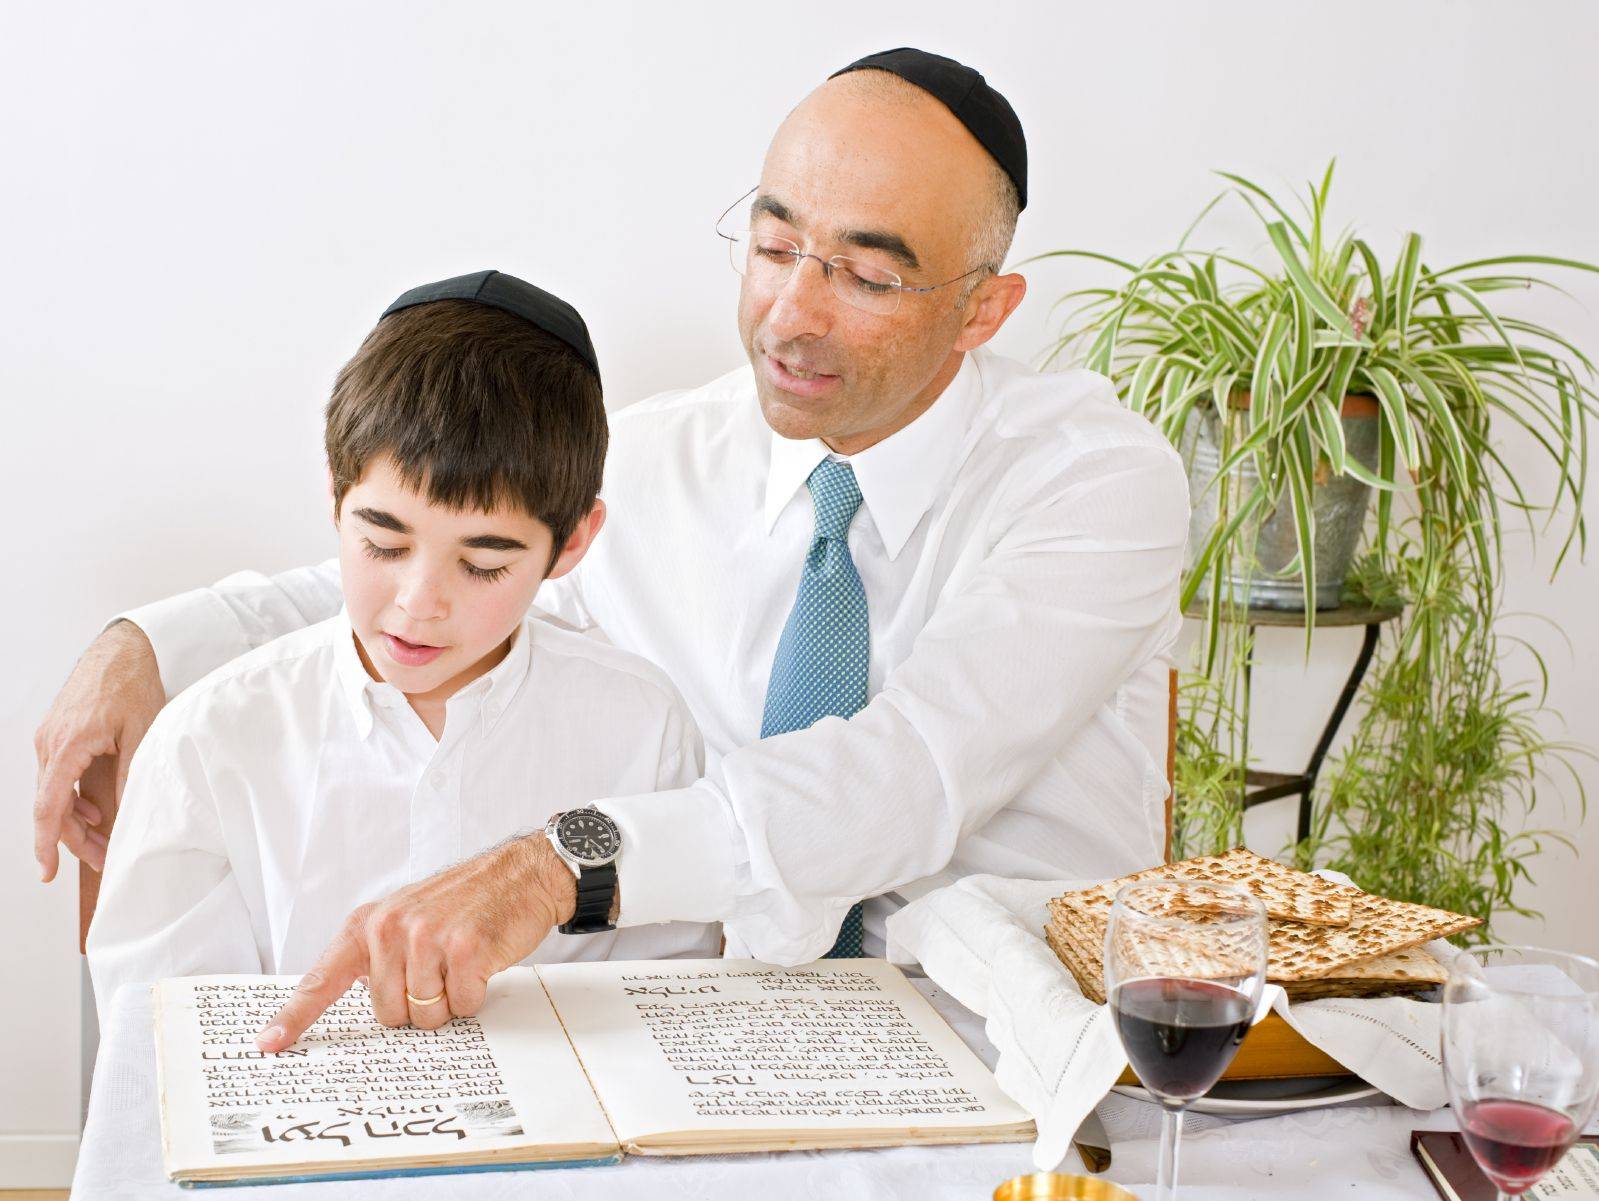 A Jewish father reads a Hebrew Haggadah with his son during the Passover Seder.